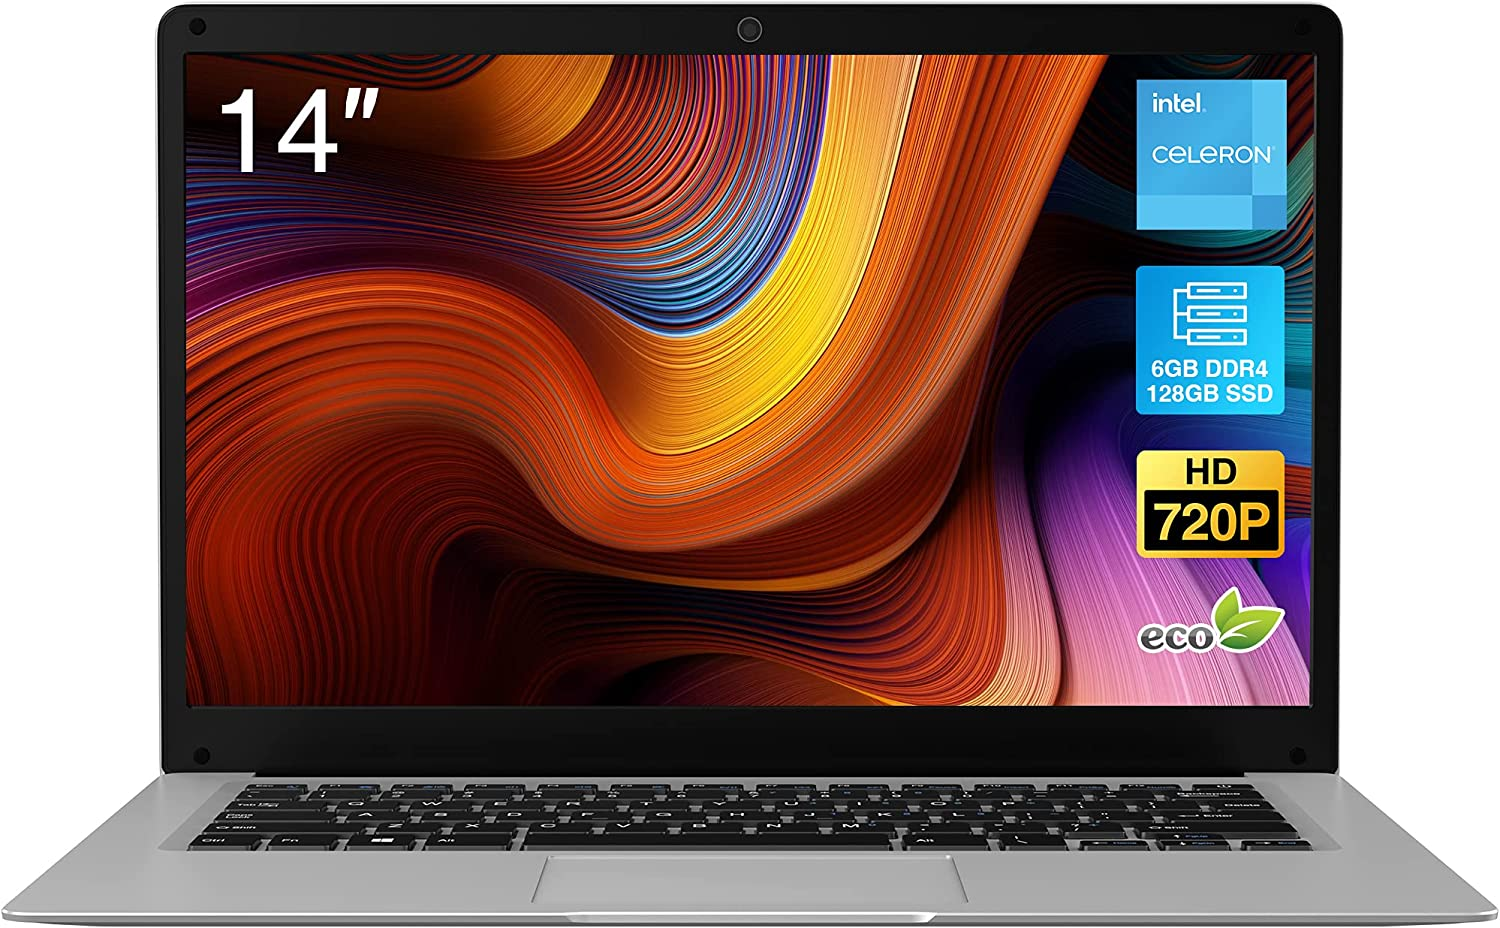 HP Chromebook x360 14a 2-in-1 Laptop - Gaming laptops under 300